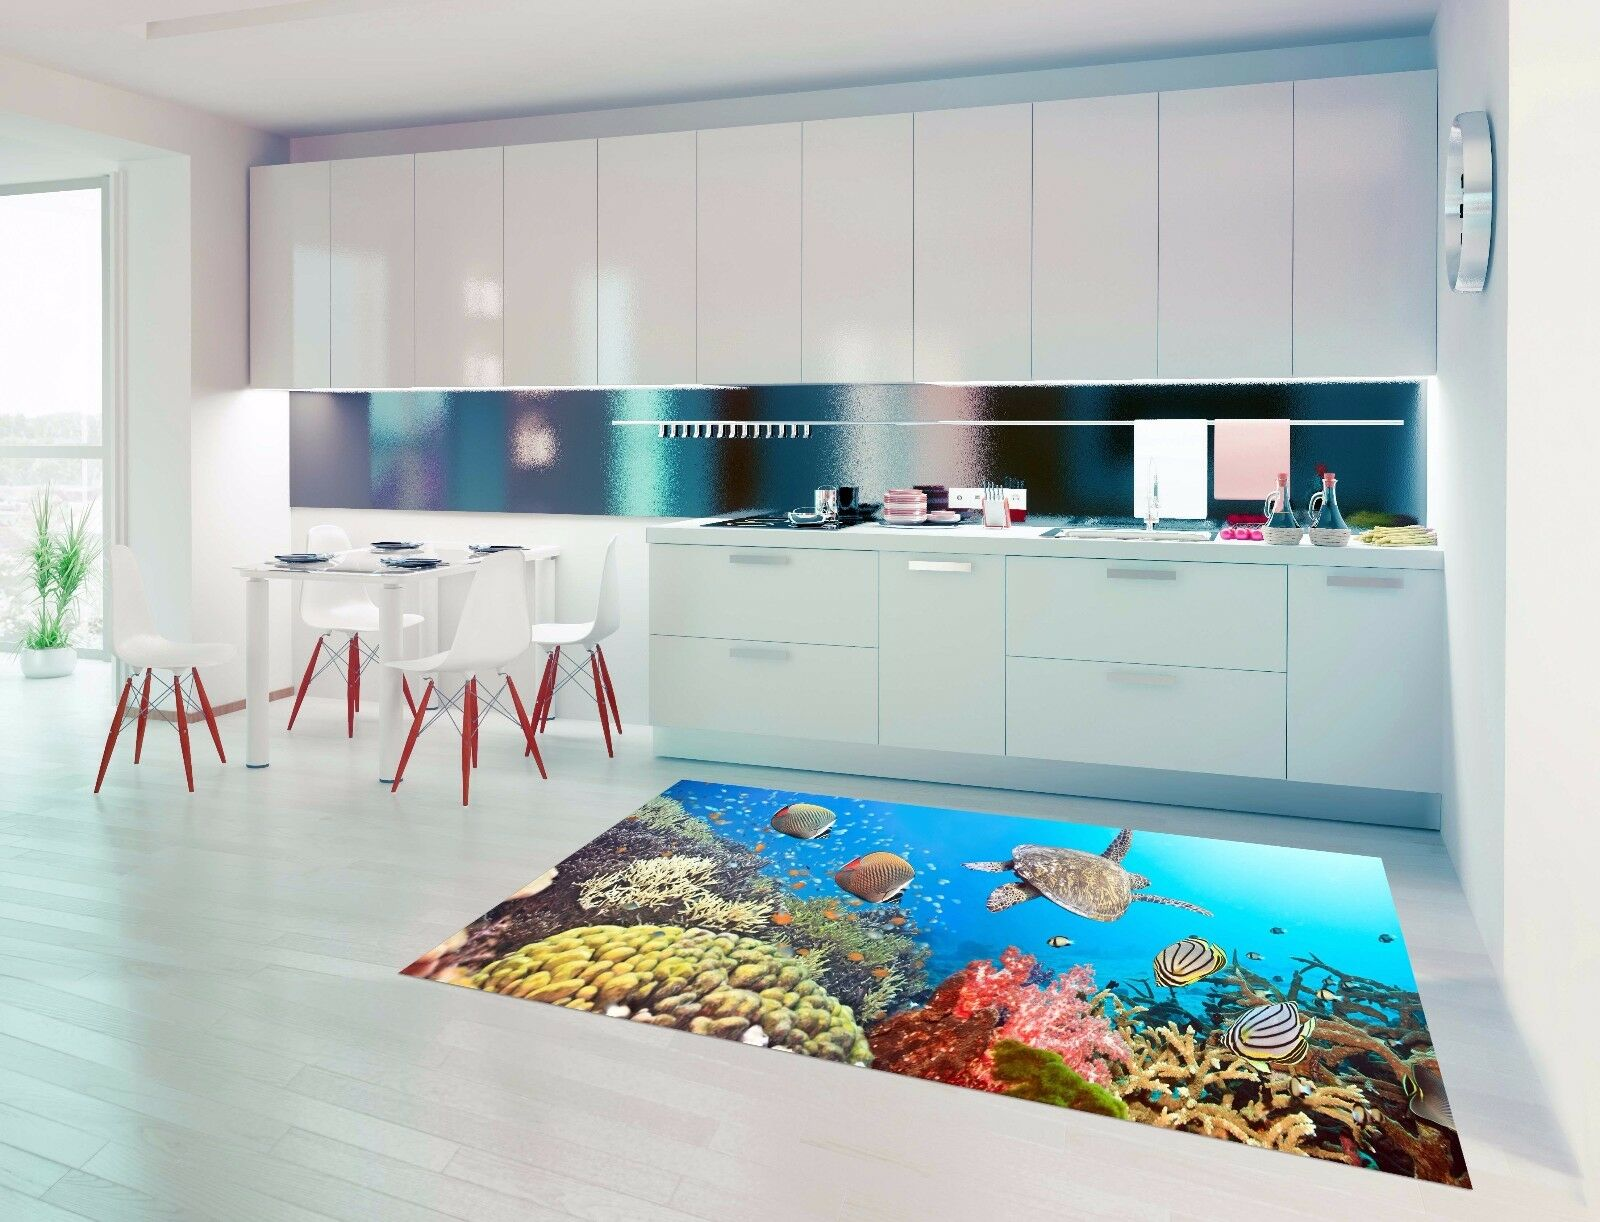 3D Water Grass 728 Kitchen Mat Floor Murals Wall Print Wall AJ WALLPAPER UK Kyra